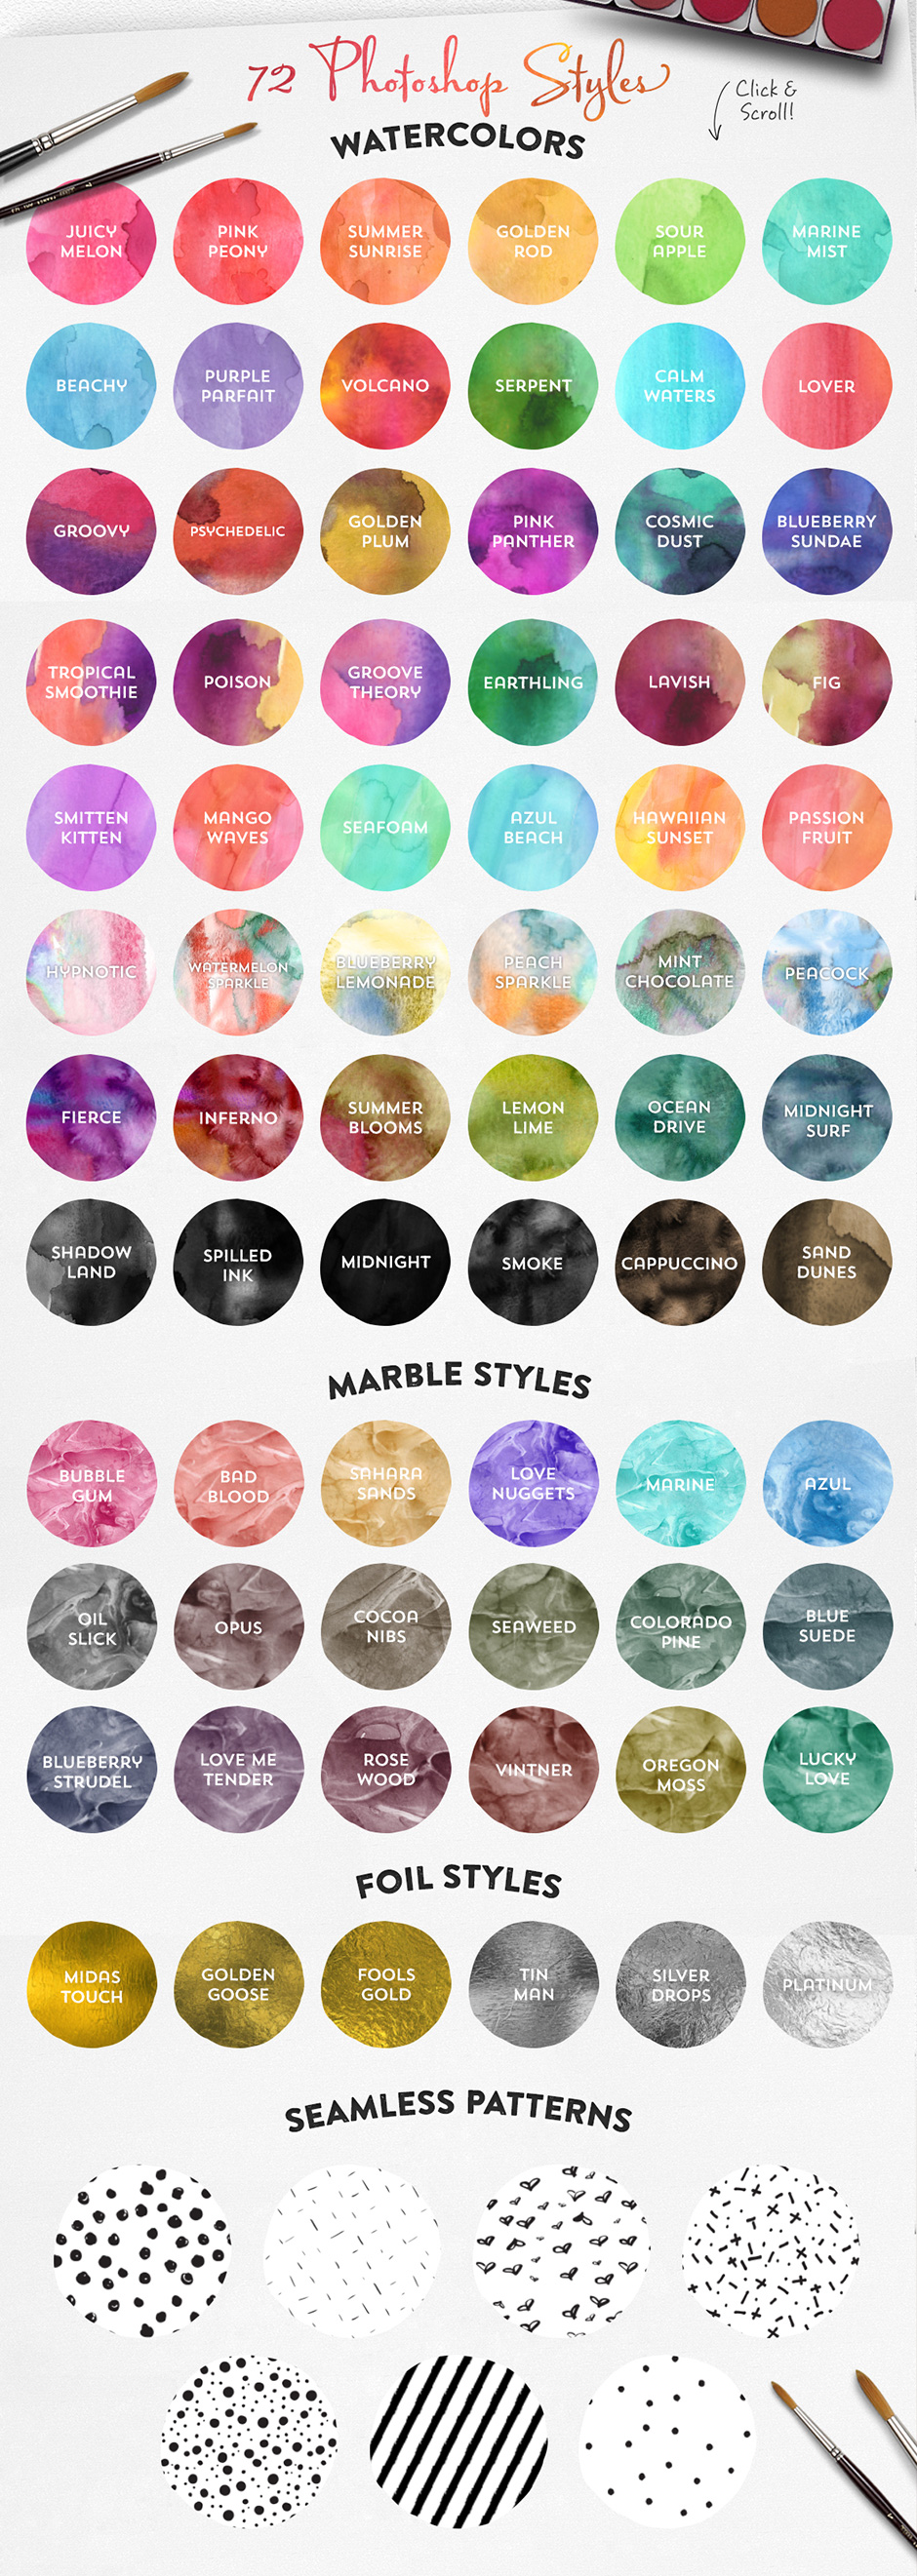 The Watercolor Media Kit for PS